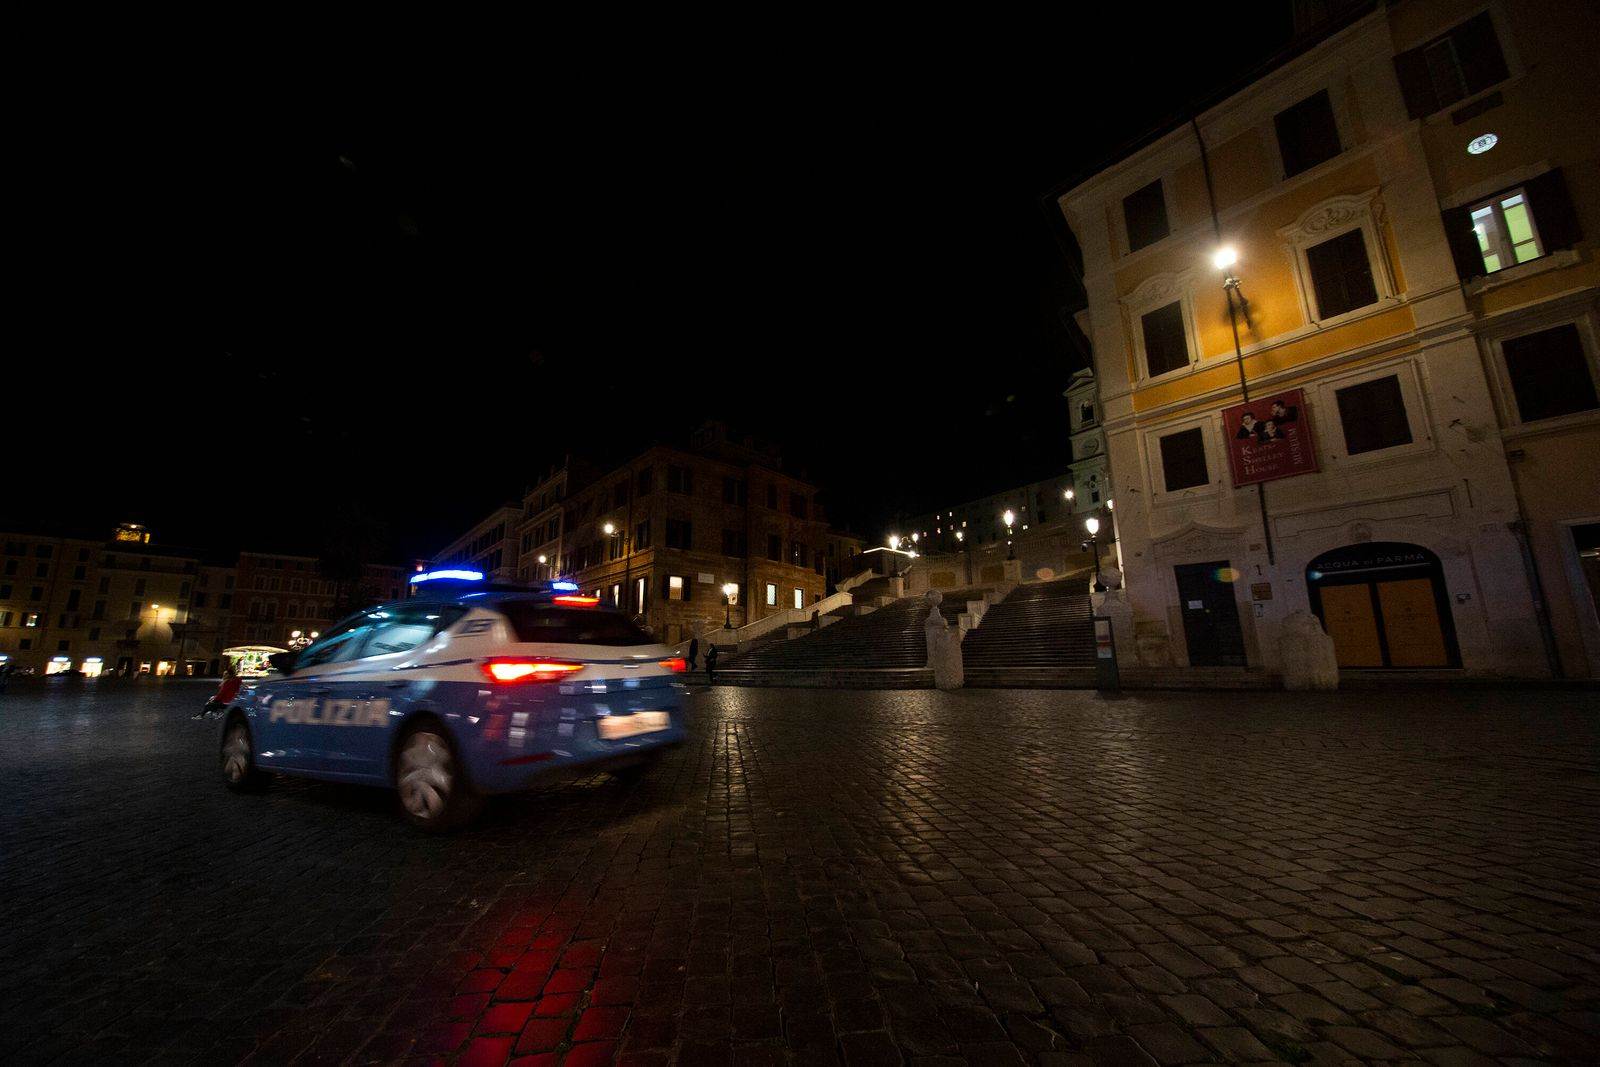 Italy in lockdown as coronavirus cases grows a police car passes in front of the Spanish Step in Rome in the evening bef